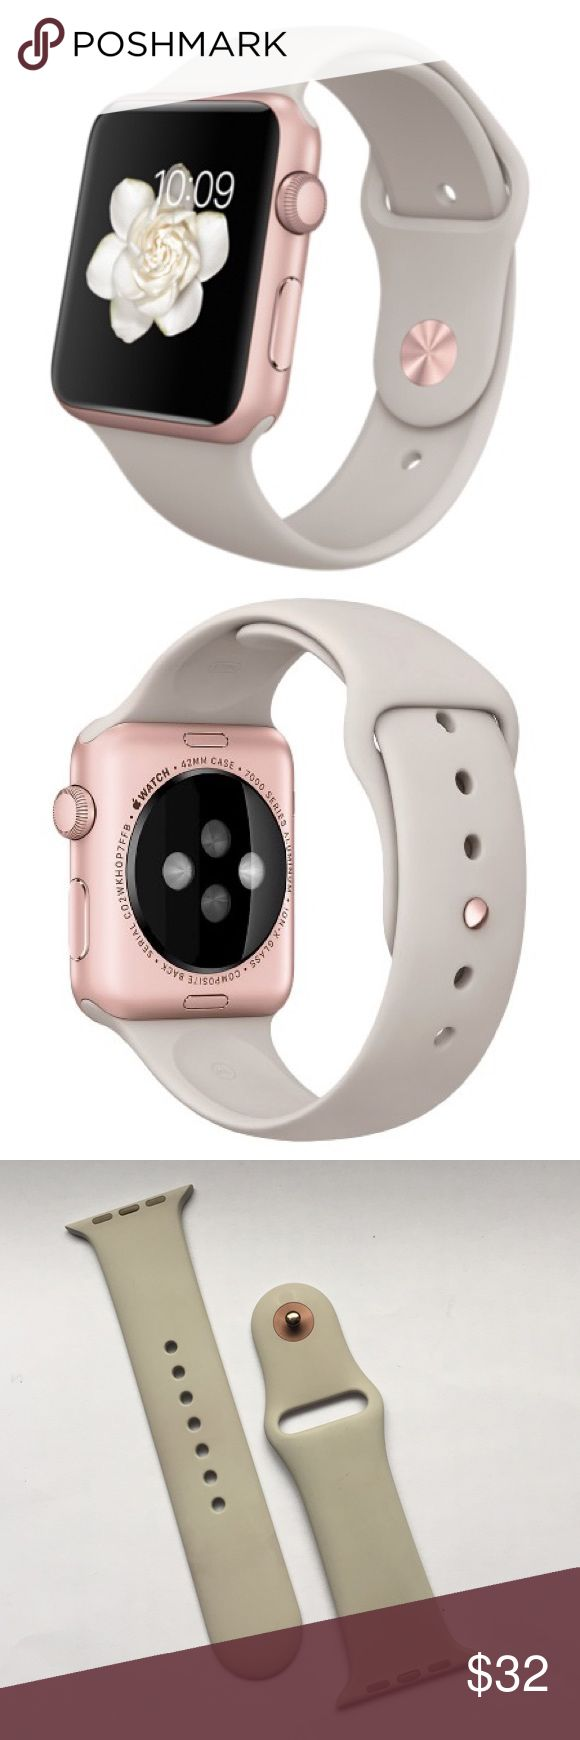 Apple Watch Sport 42mm Stone Wristband Replacement Great condition! Gray with rose gold Button. %100 authentic Apple! Bundle 2 or more items to get %10 off  Apple Accessories Watches